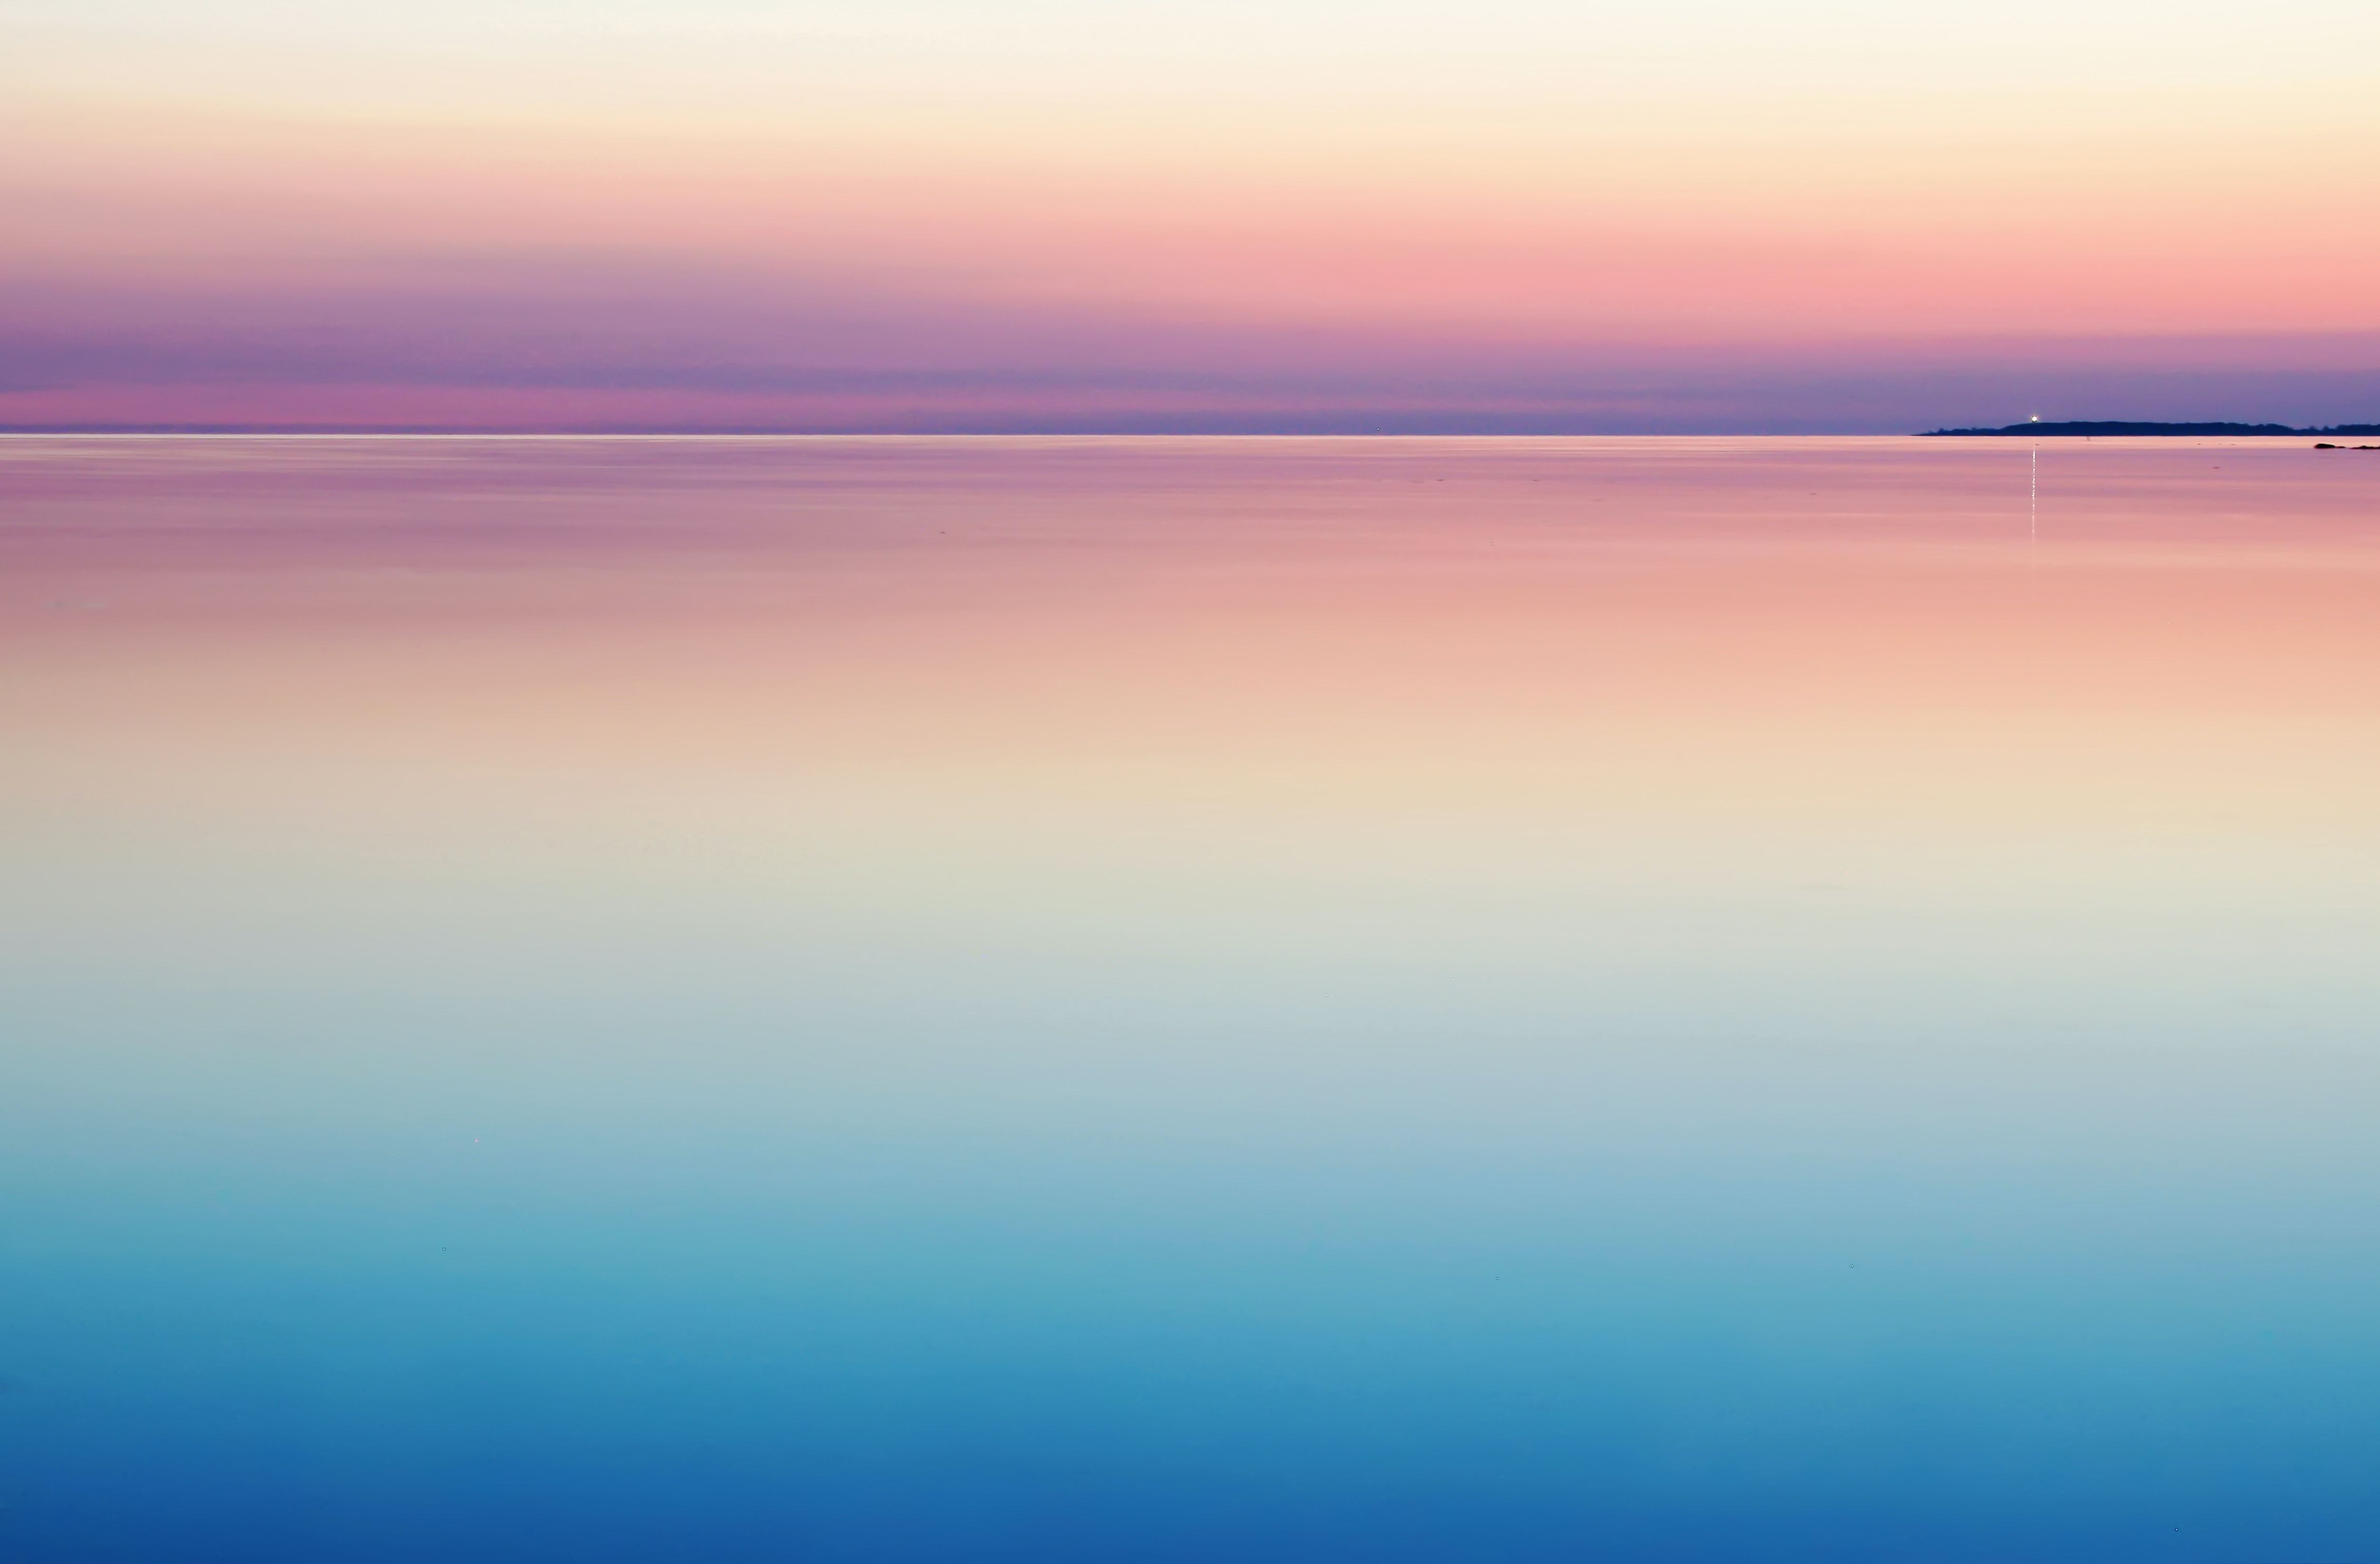 A peaceful and serene pastel pink and purple sunset reflecting on still and calm water